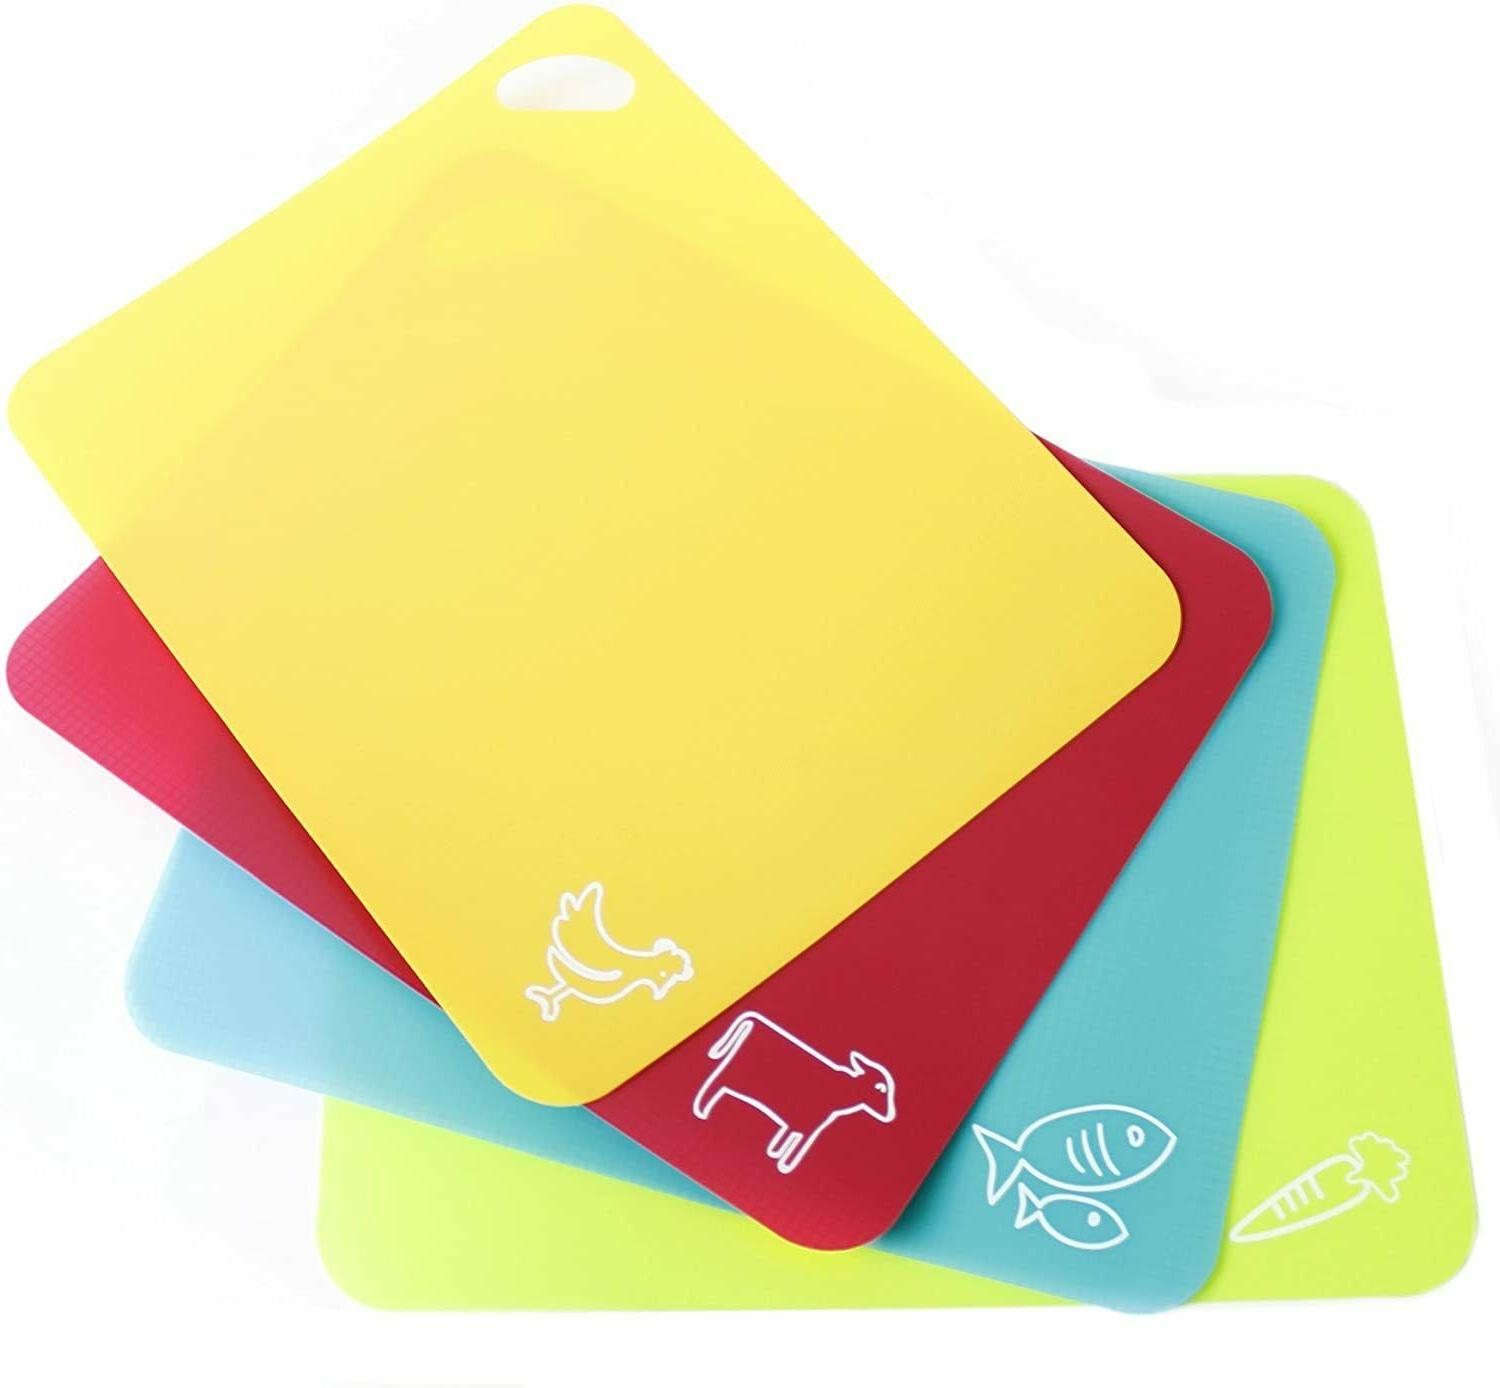 flexible cutting board with icons bpa free